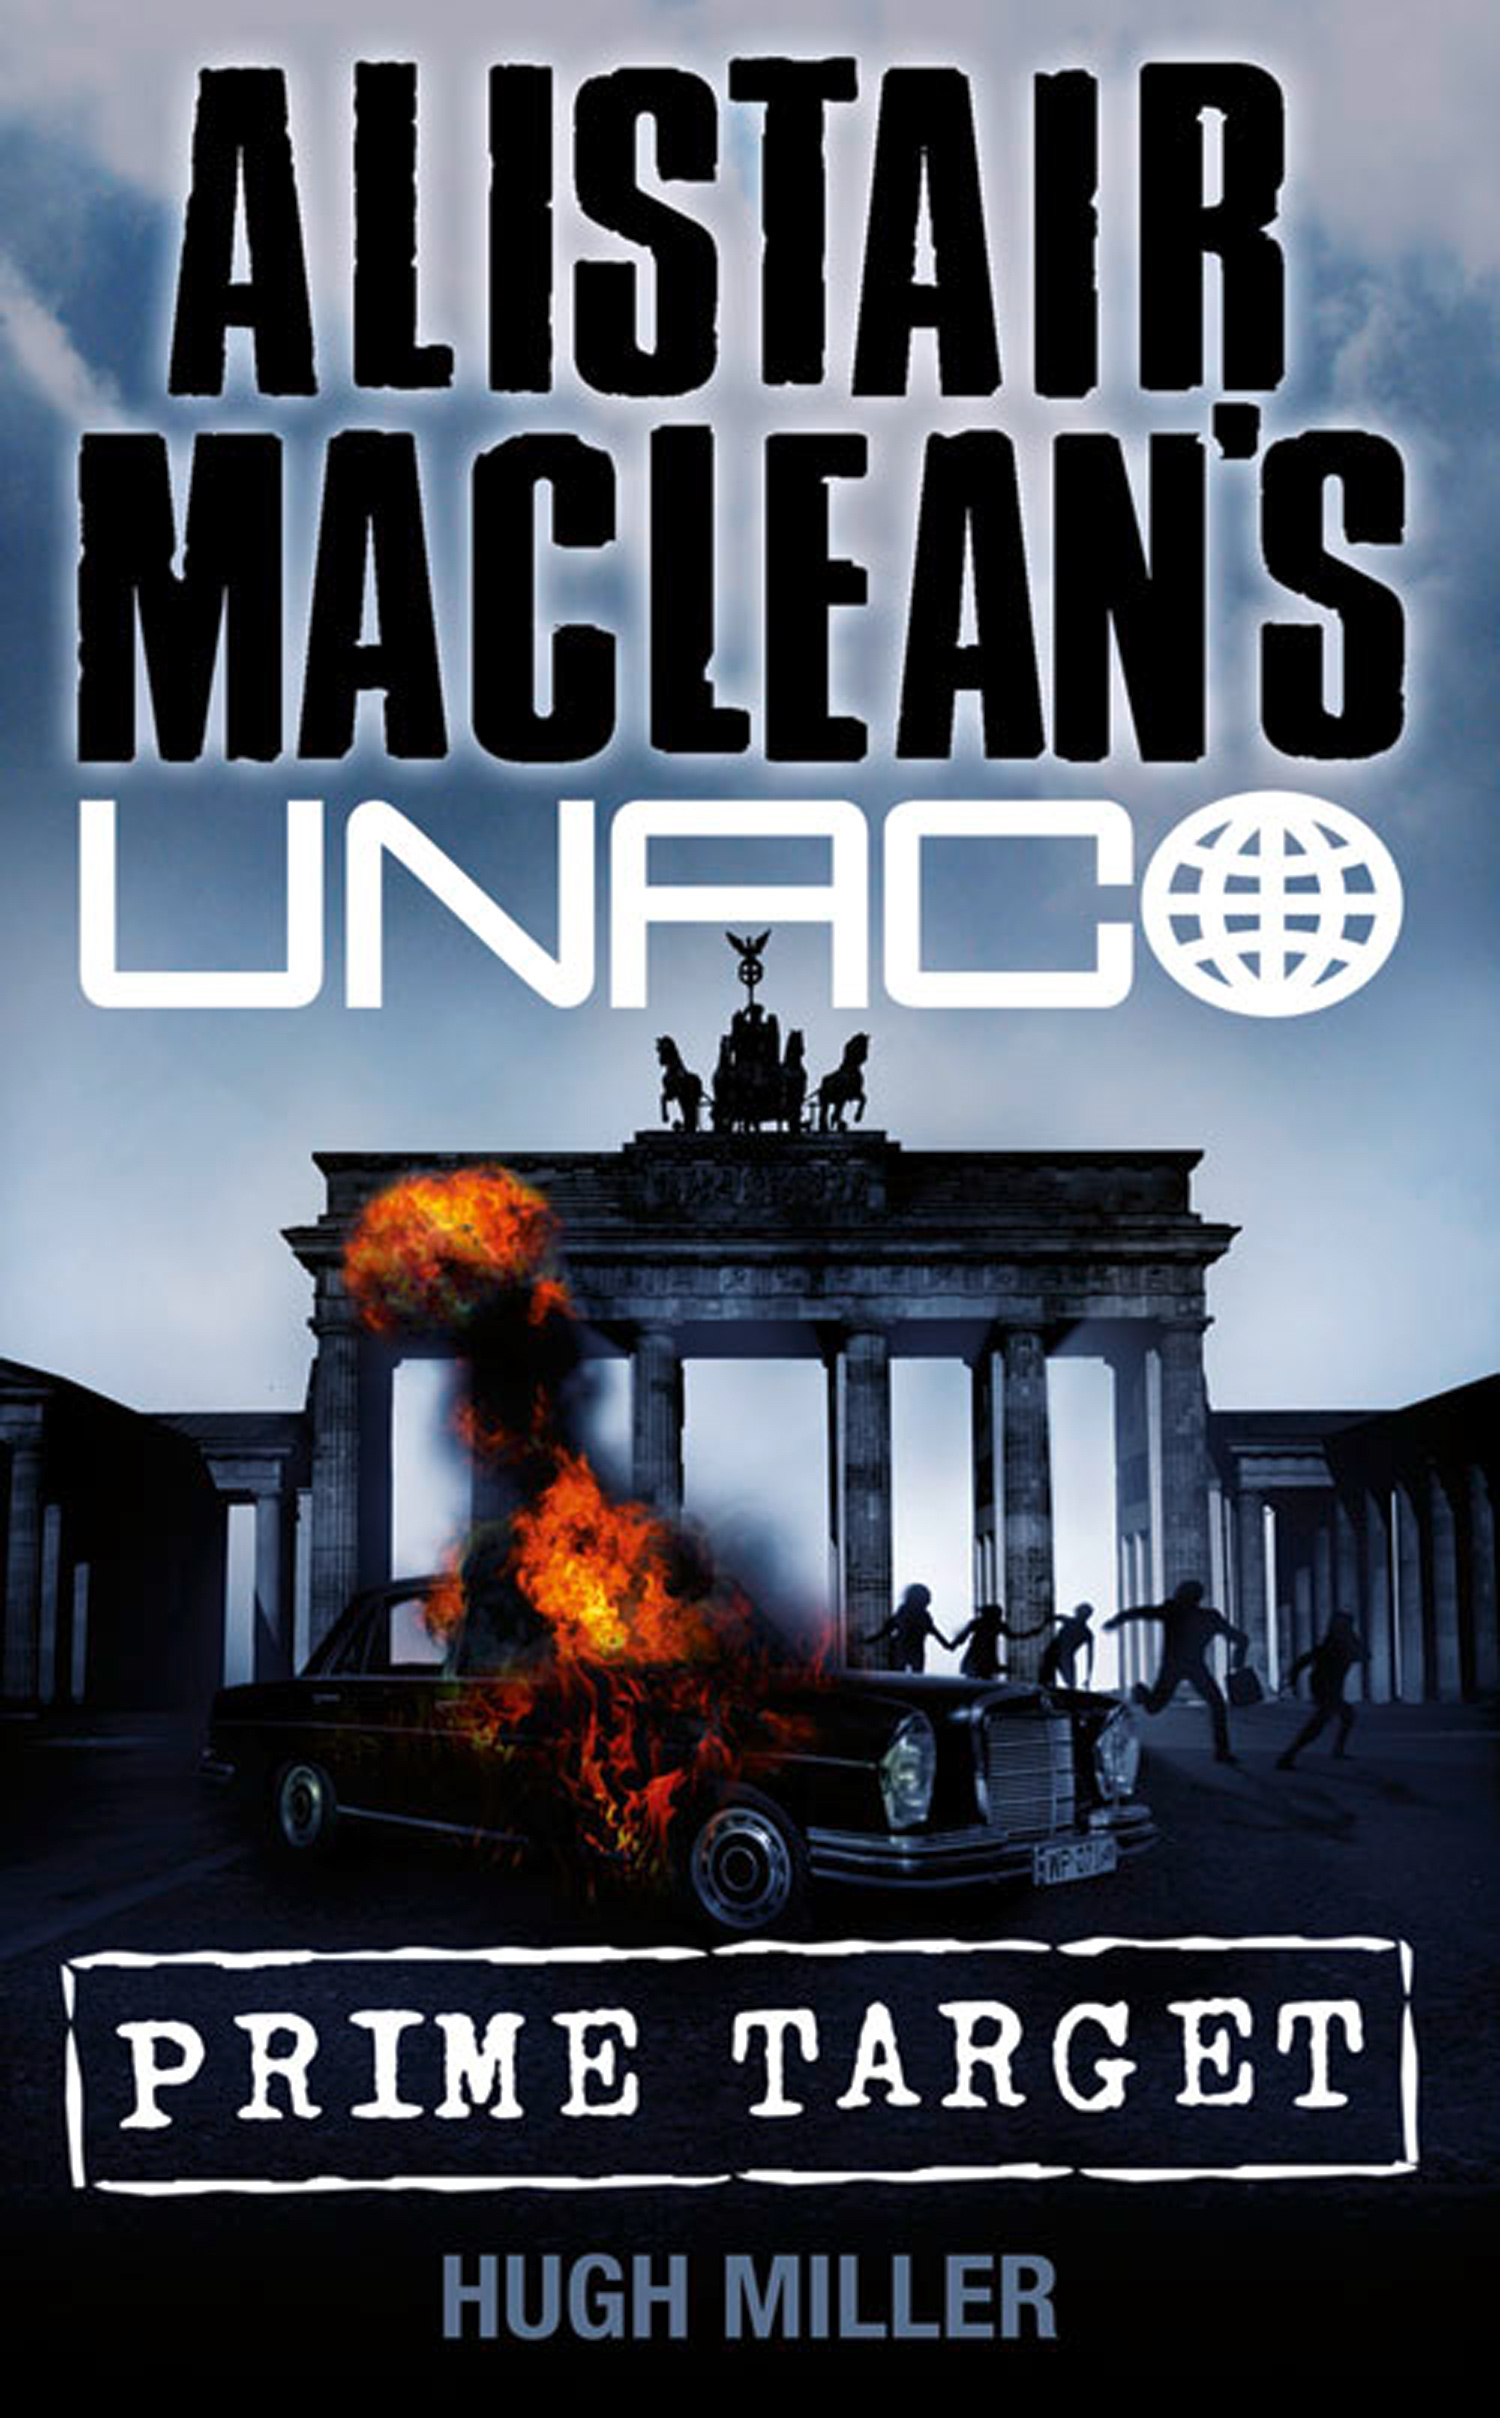 Prime Target (Alistair MacLean's UNACO) By: Alistair MacLean,Hugh Miller